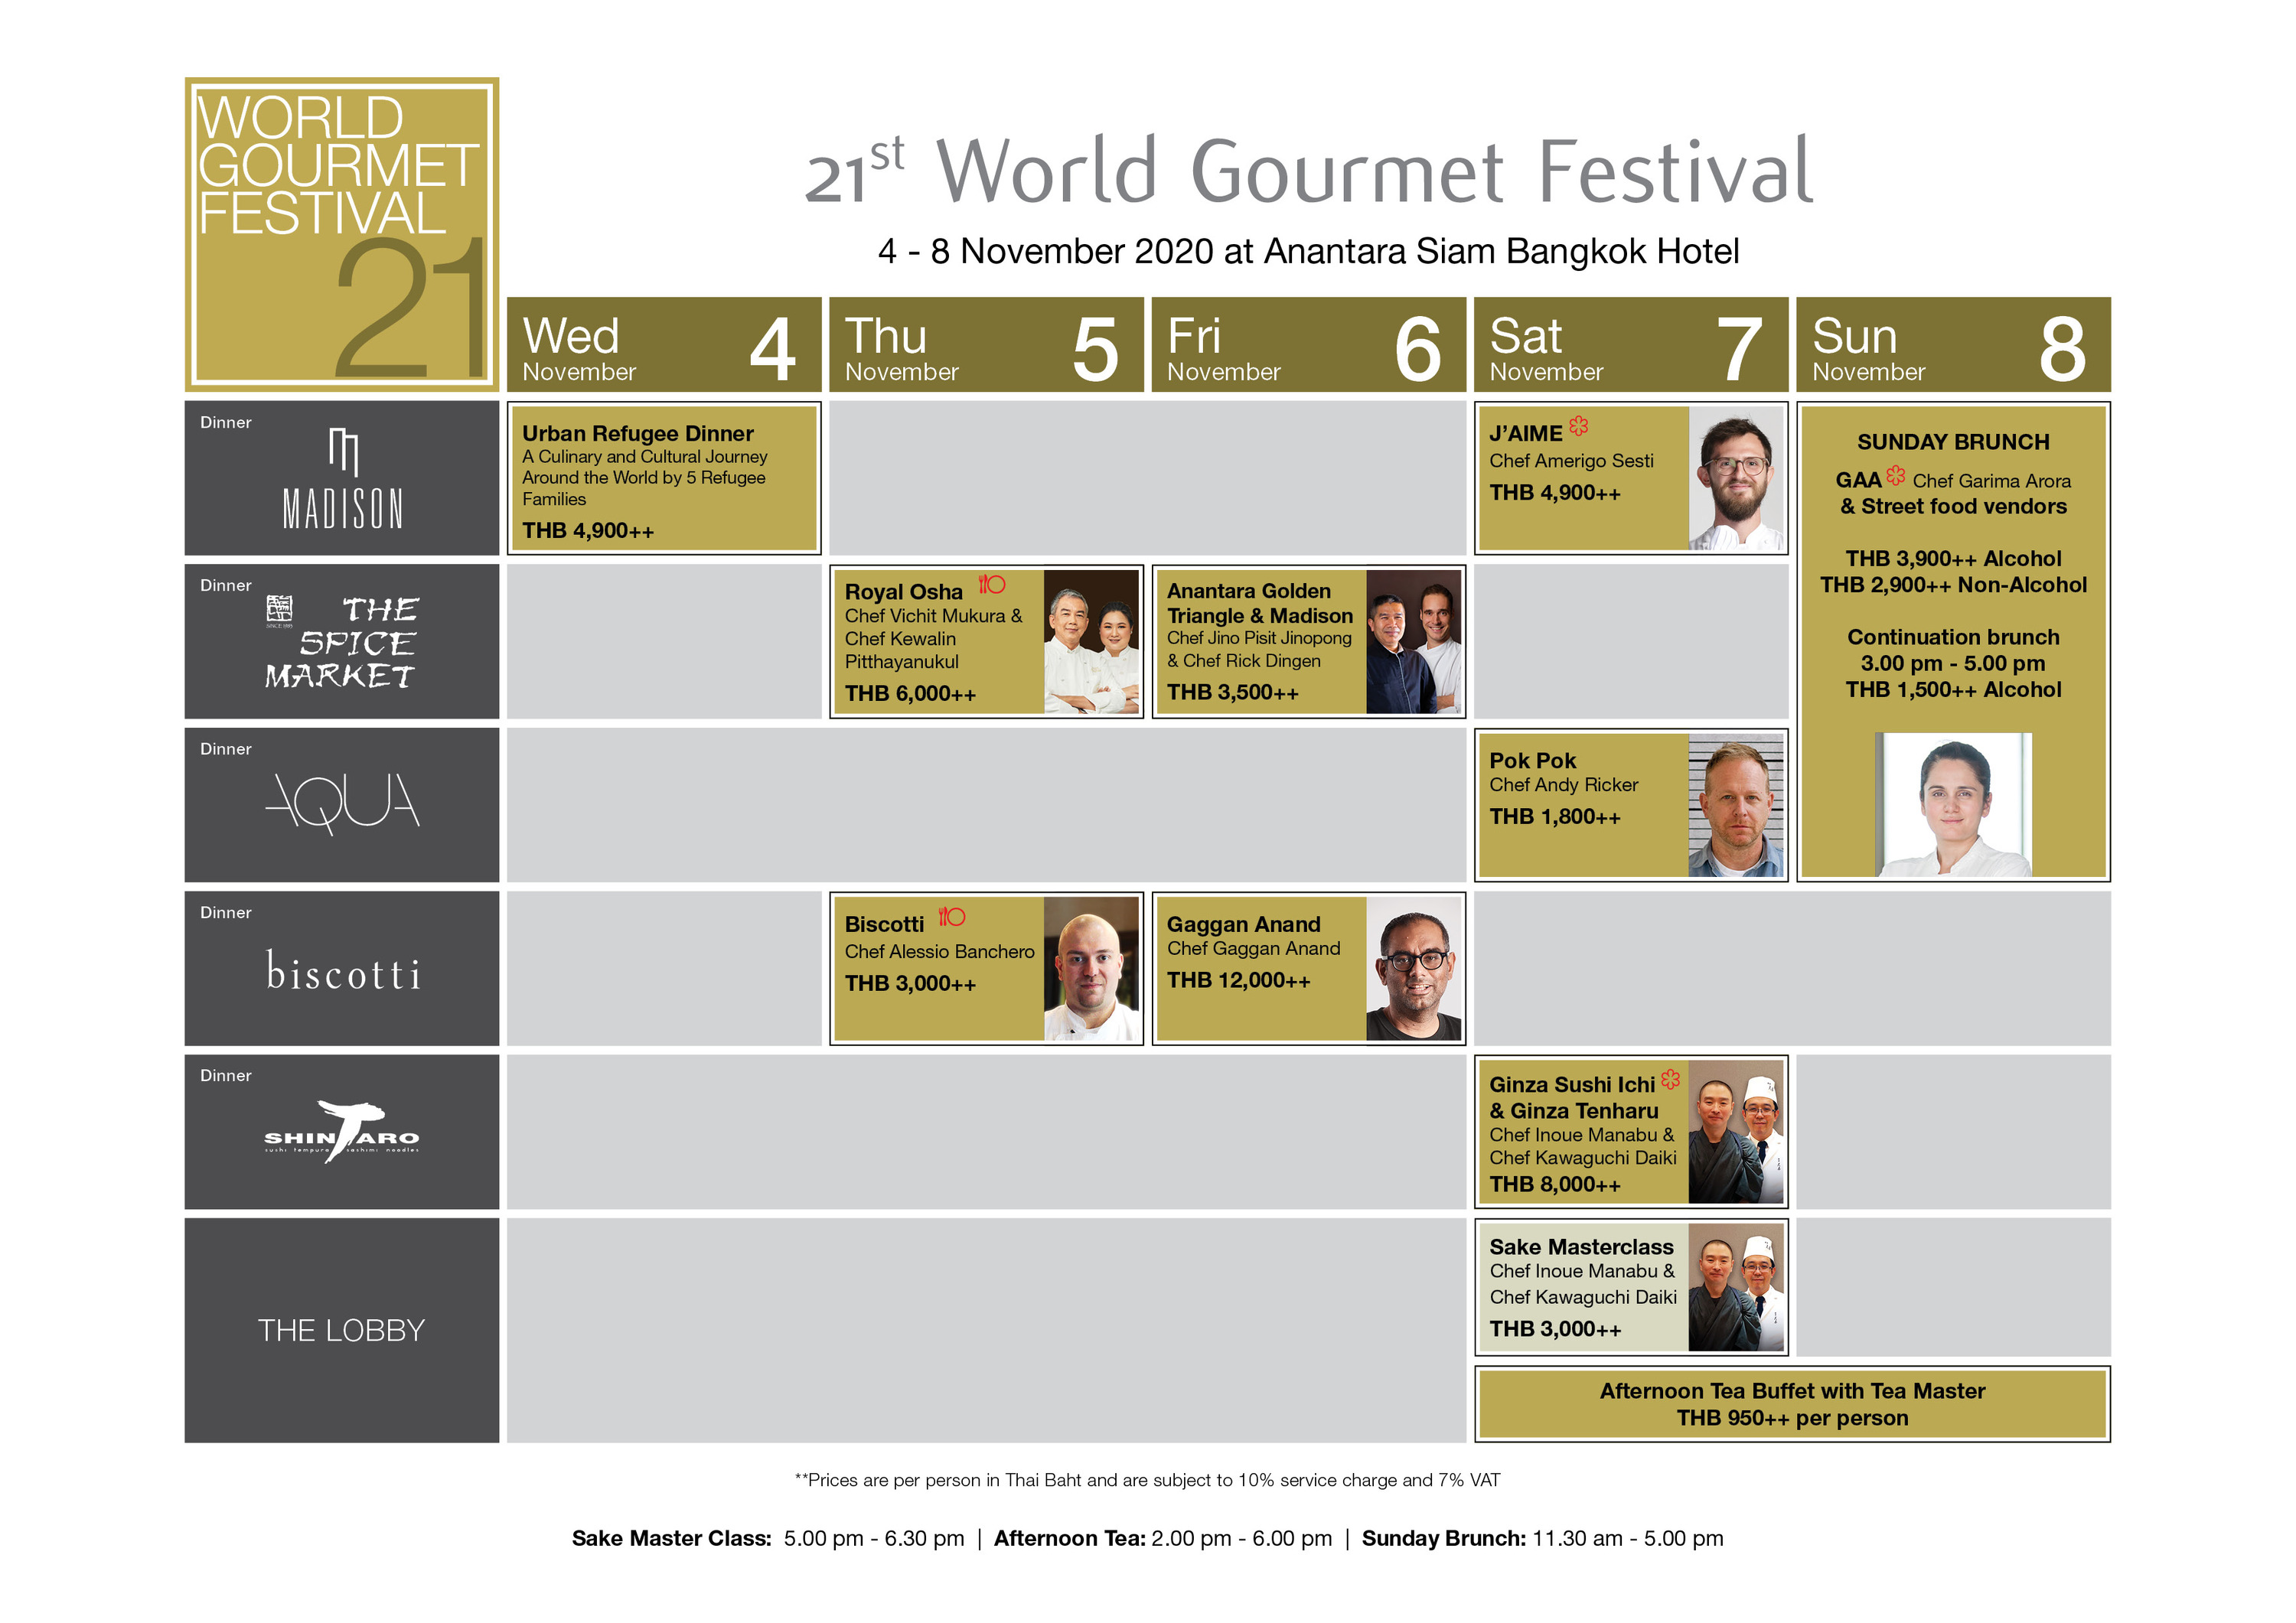 World Gourmet Festival Comes of Age